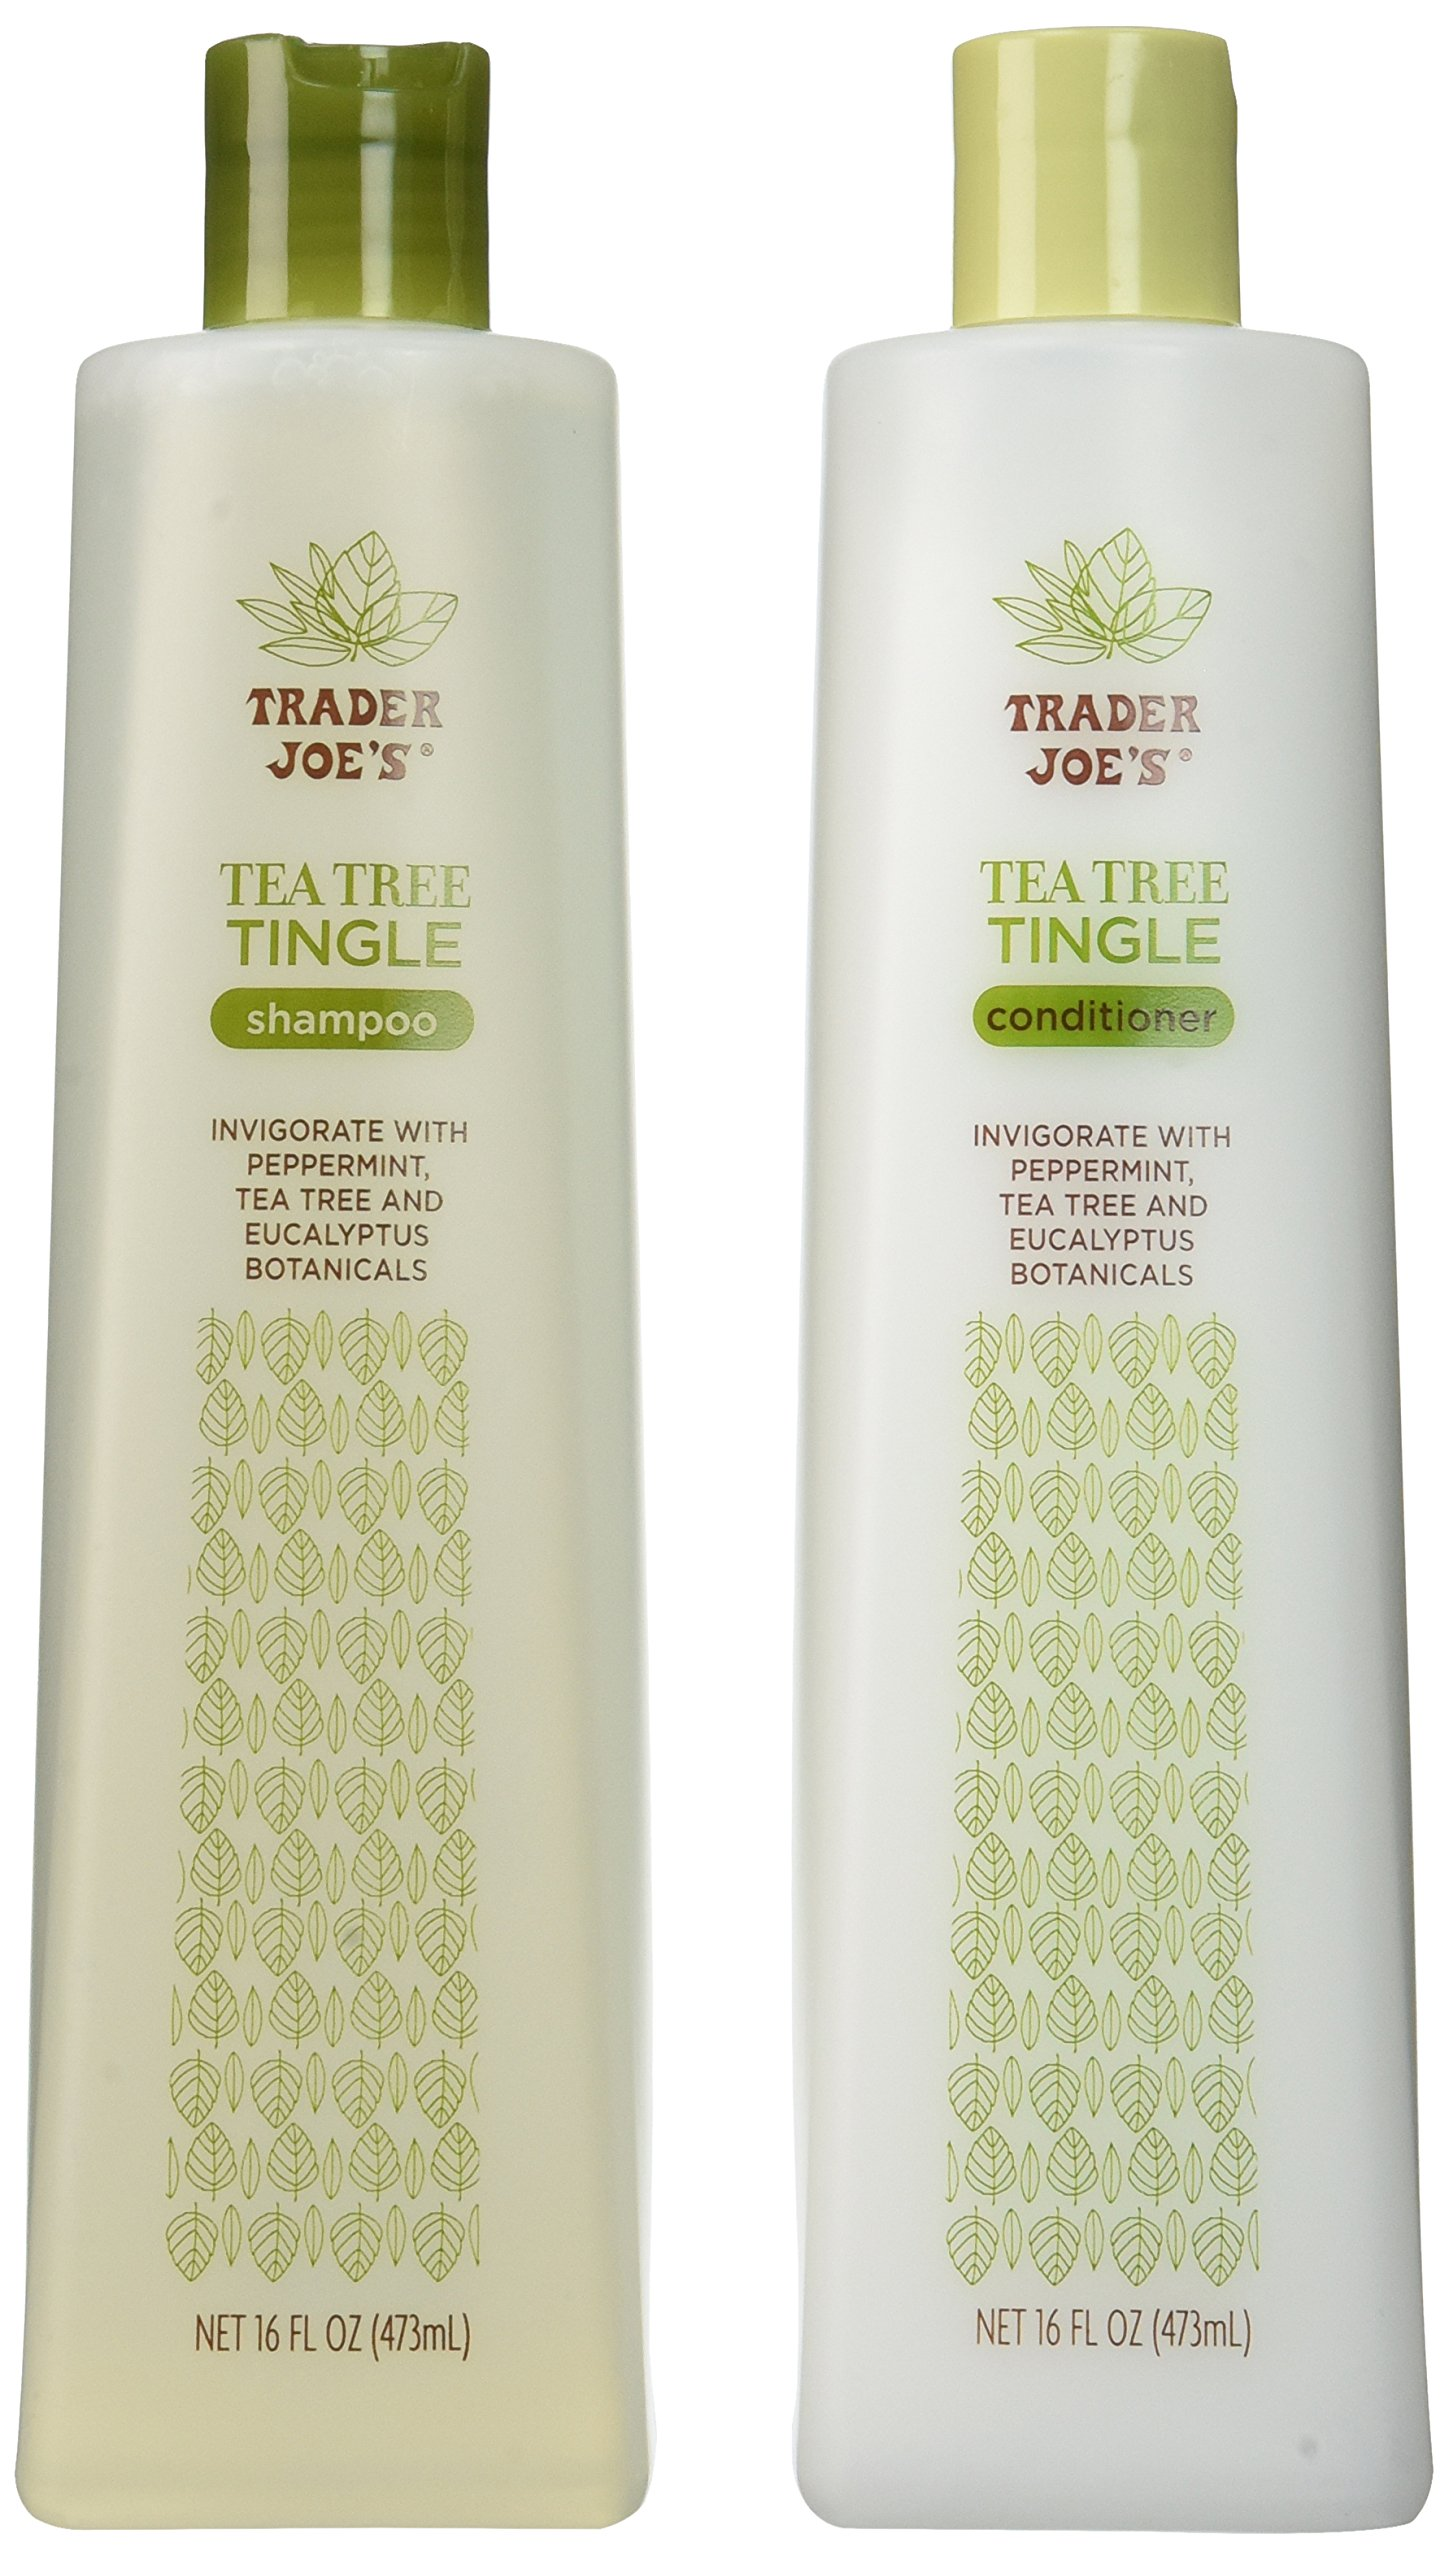 trader joe 39 s nourish spa balance moisturizing shampoo moisturizing conditioner. Black Bedroom Furniture Sets. Home Design Ideas